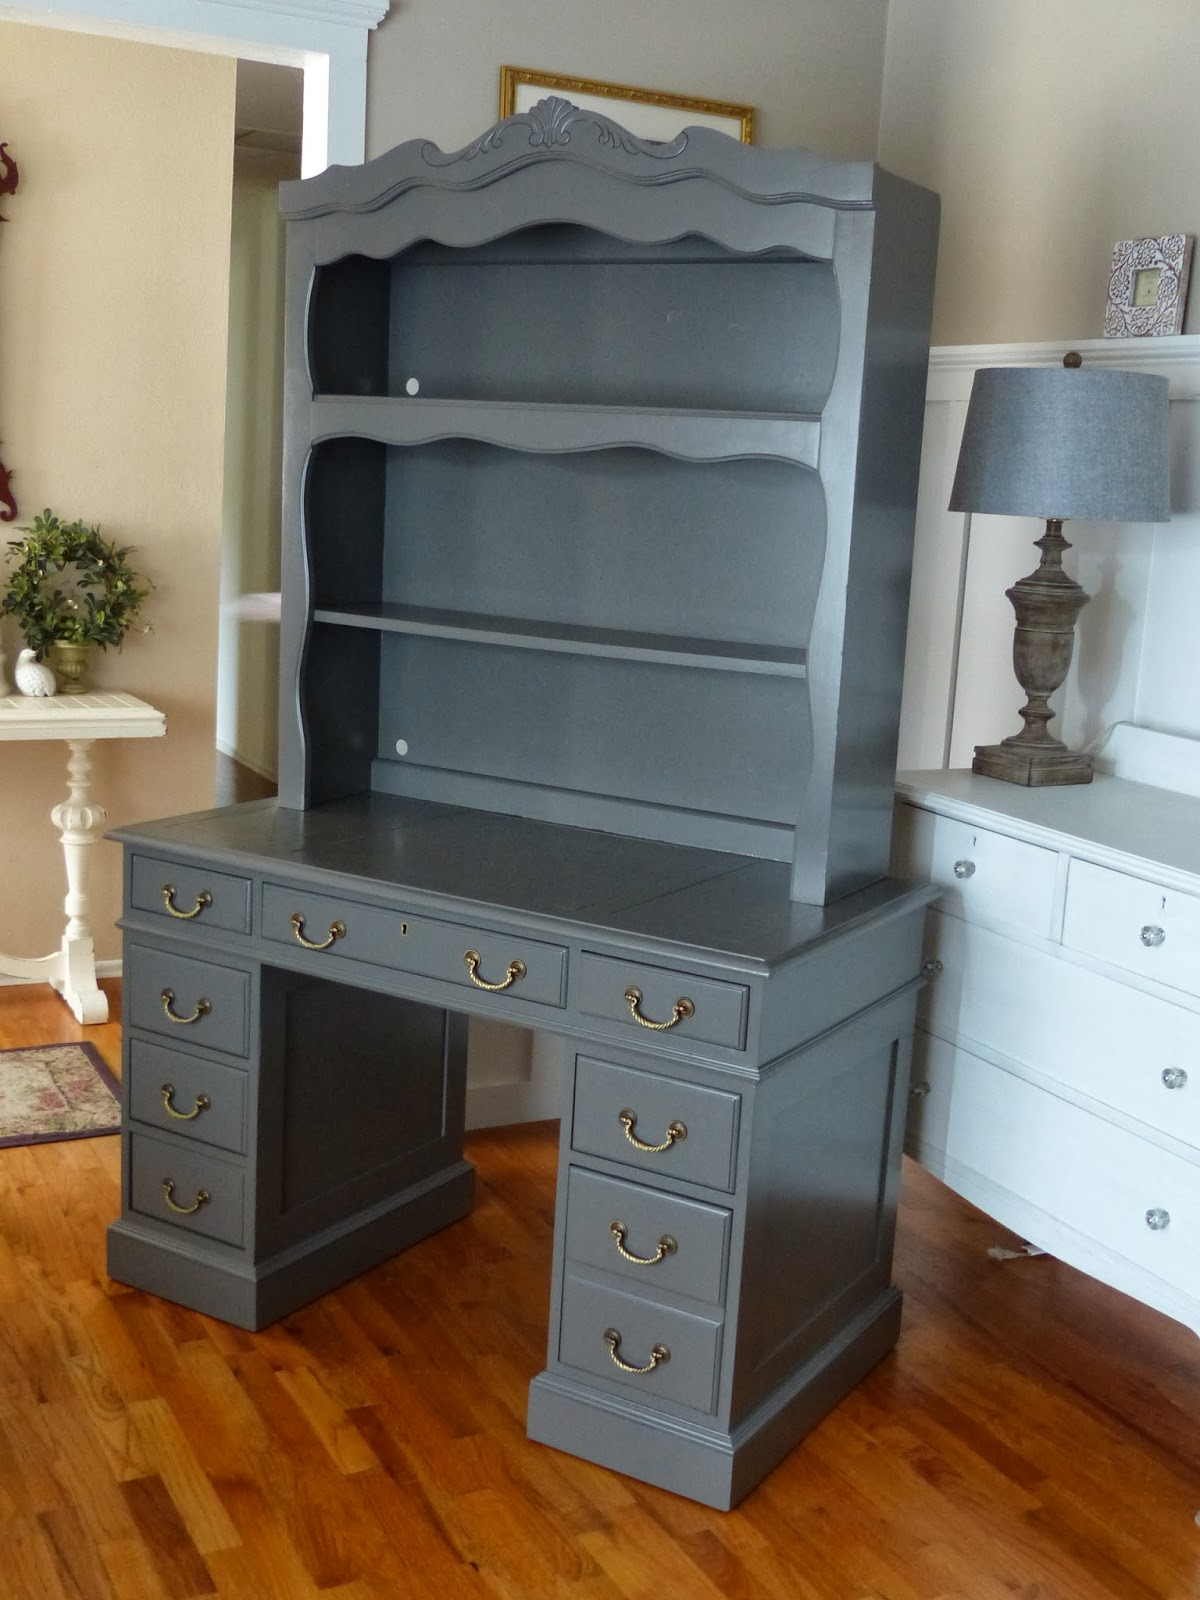 For the Love of it - For The Love Of It: Antique Desk And Hutch